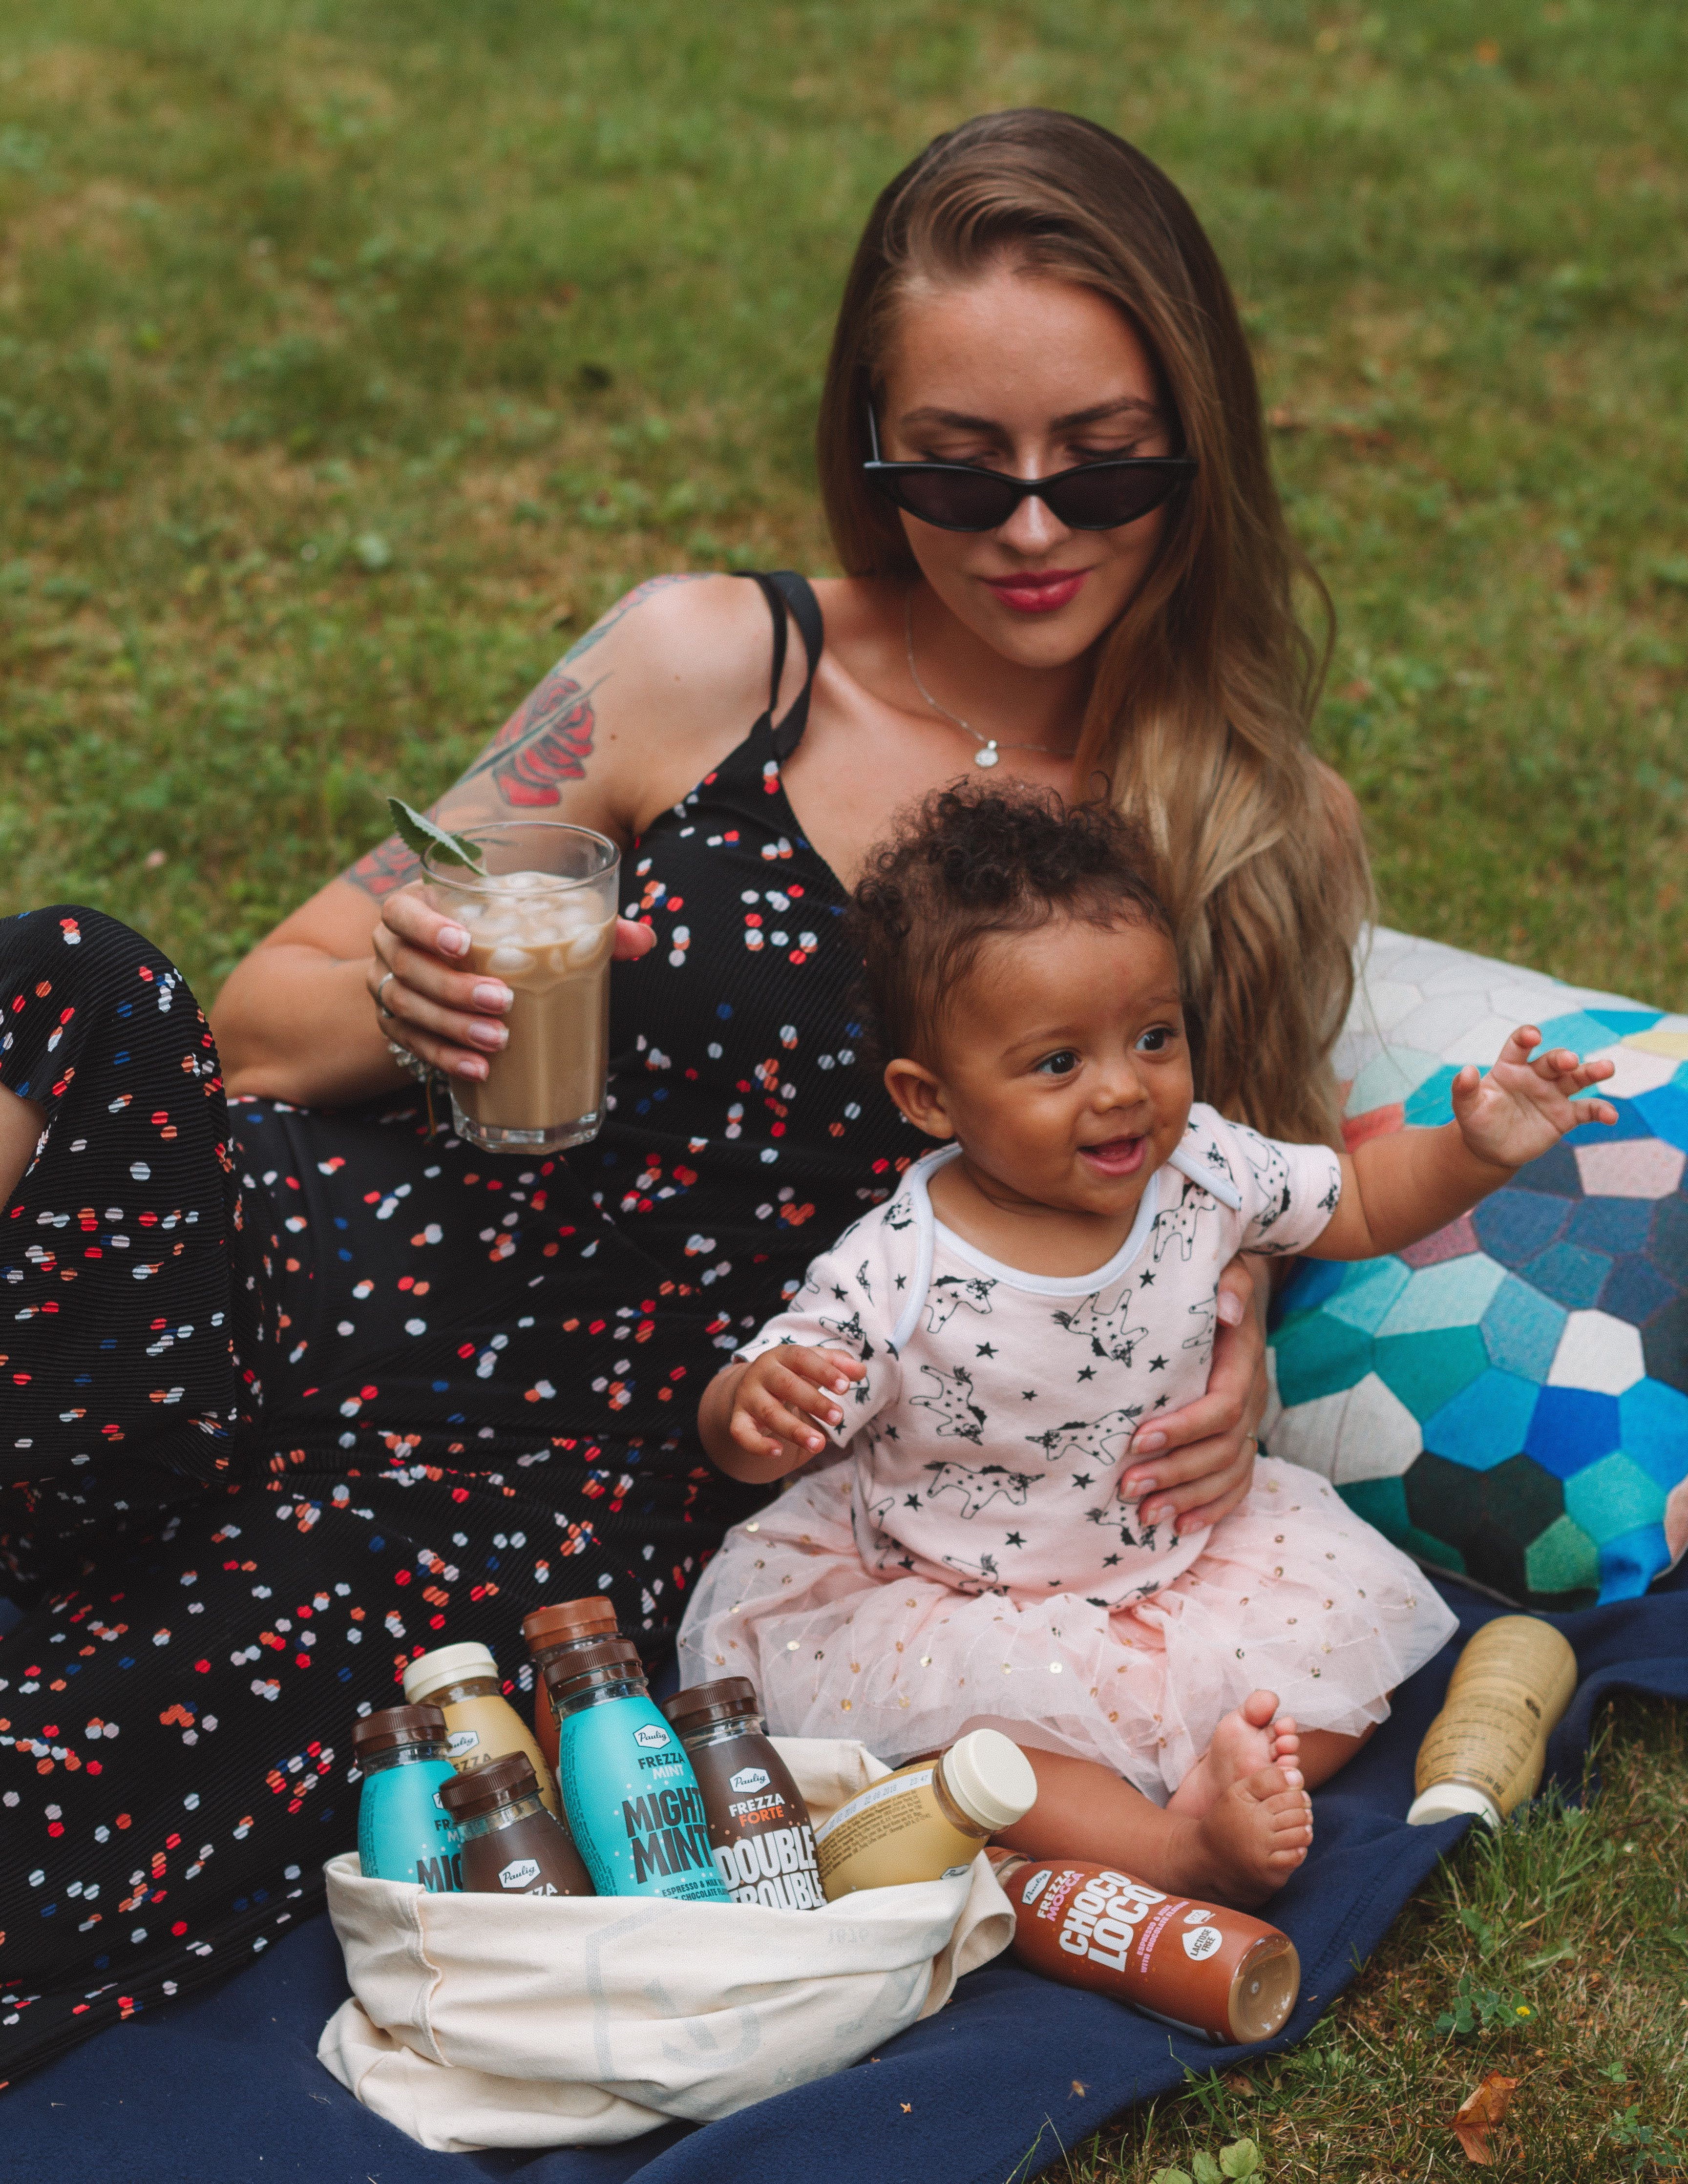 Woman Leaning on Grass While Holding Child and Glass of Drink